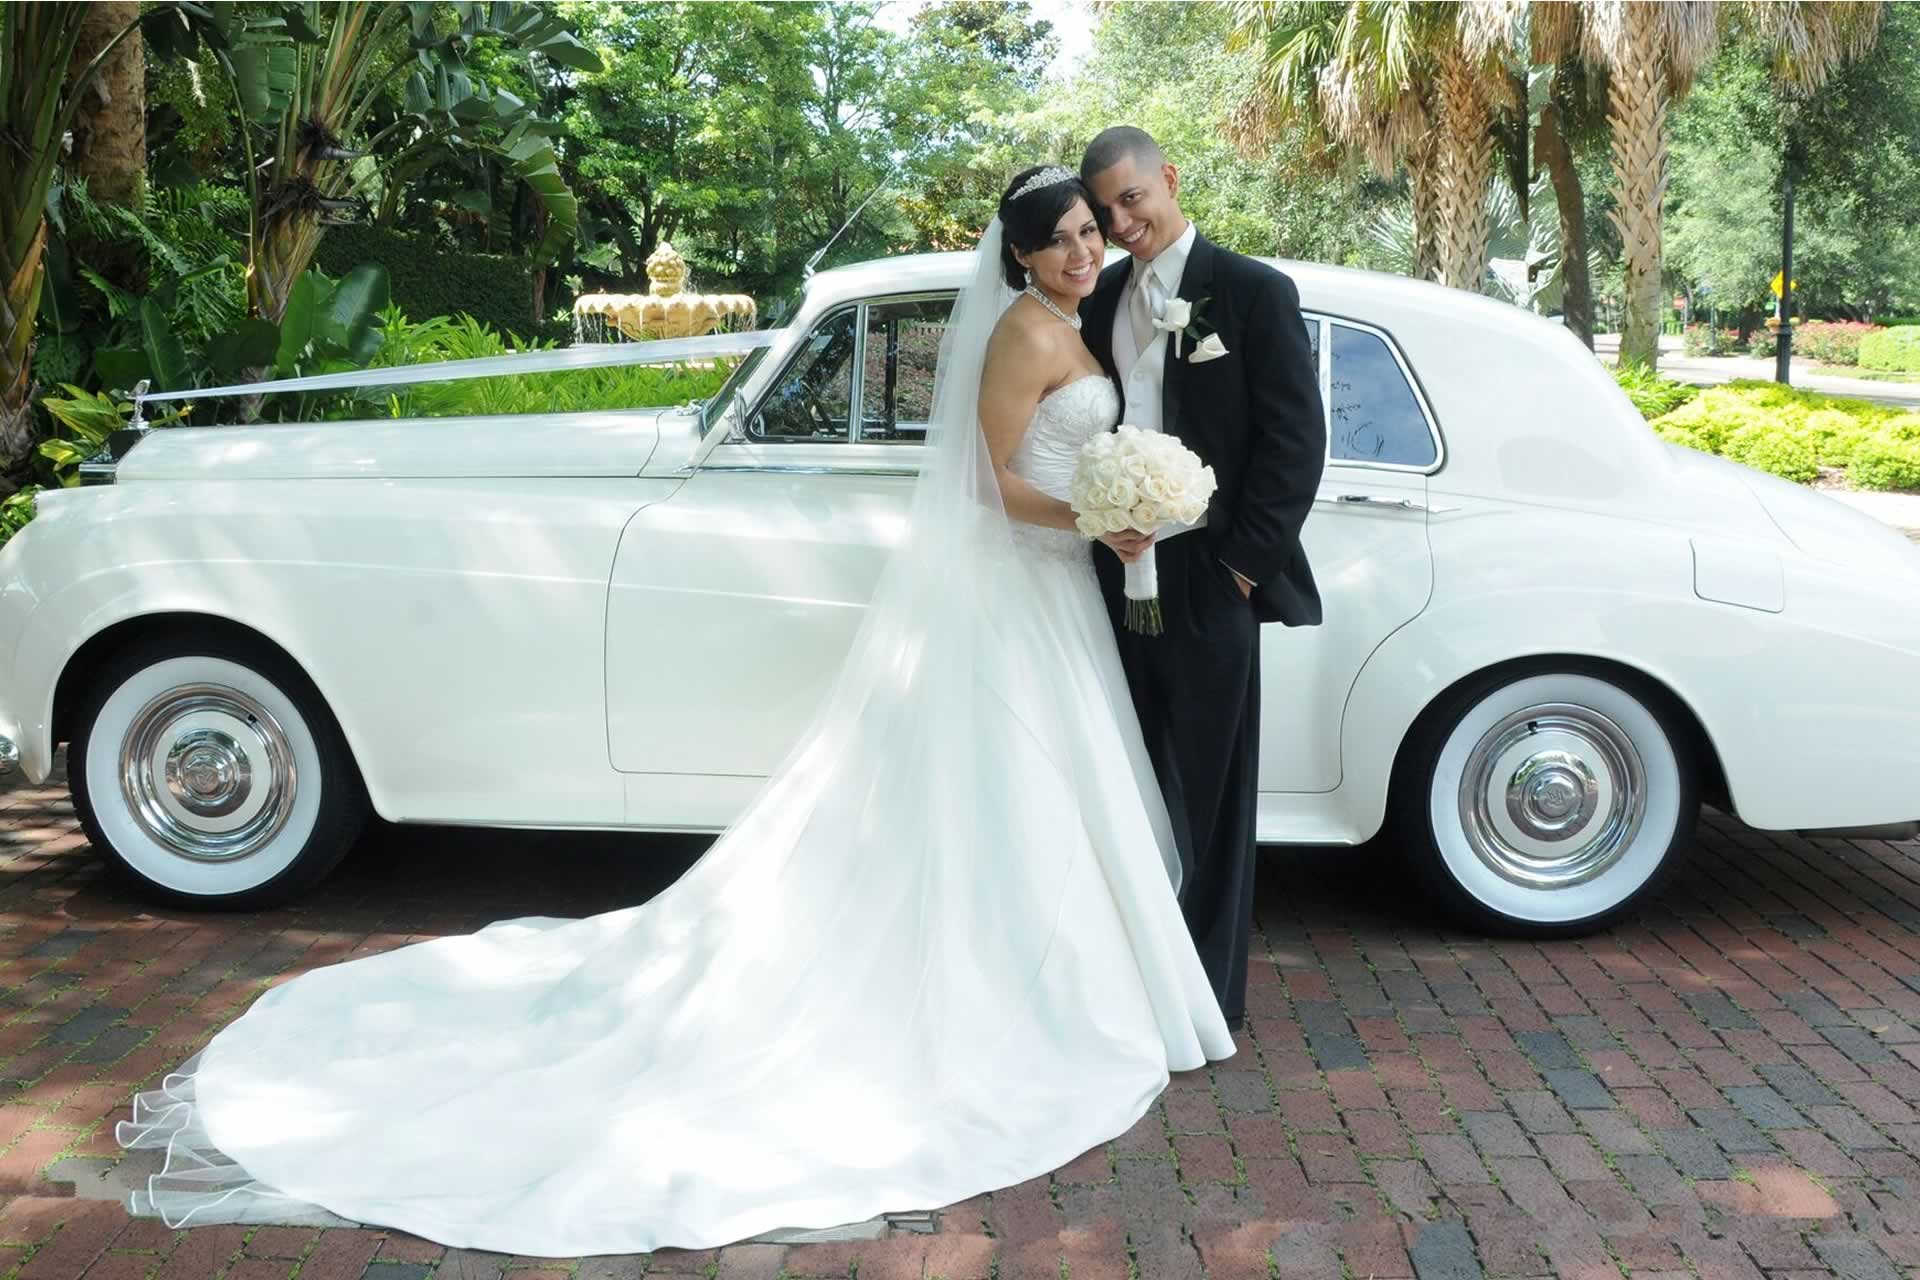 Vip Wedding Transportation - Image provided by: MistyMiotto.com